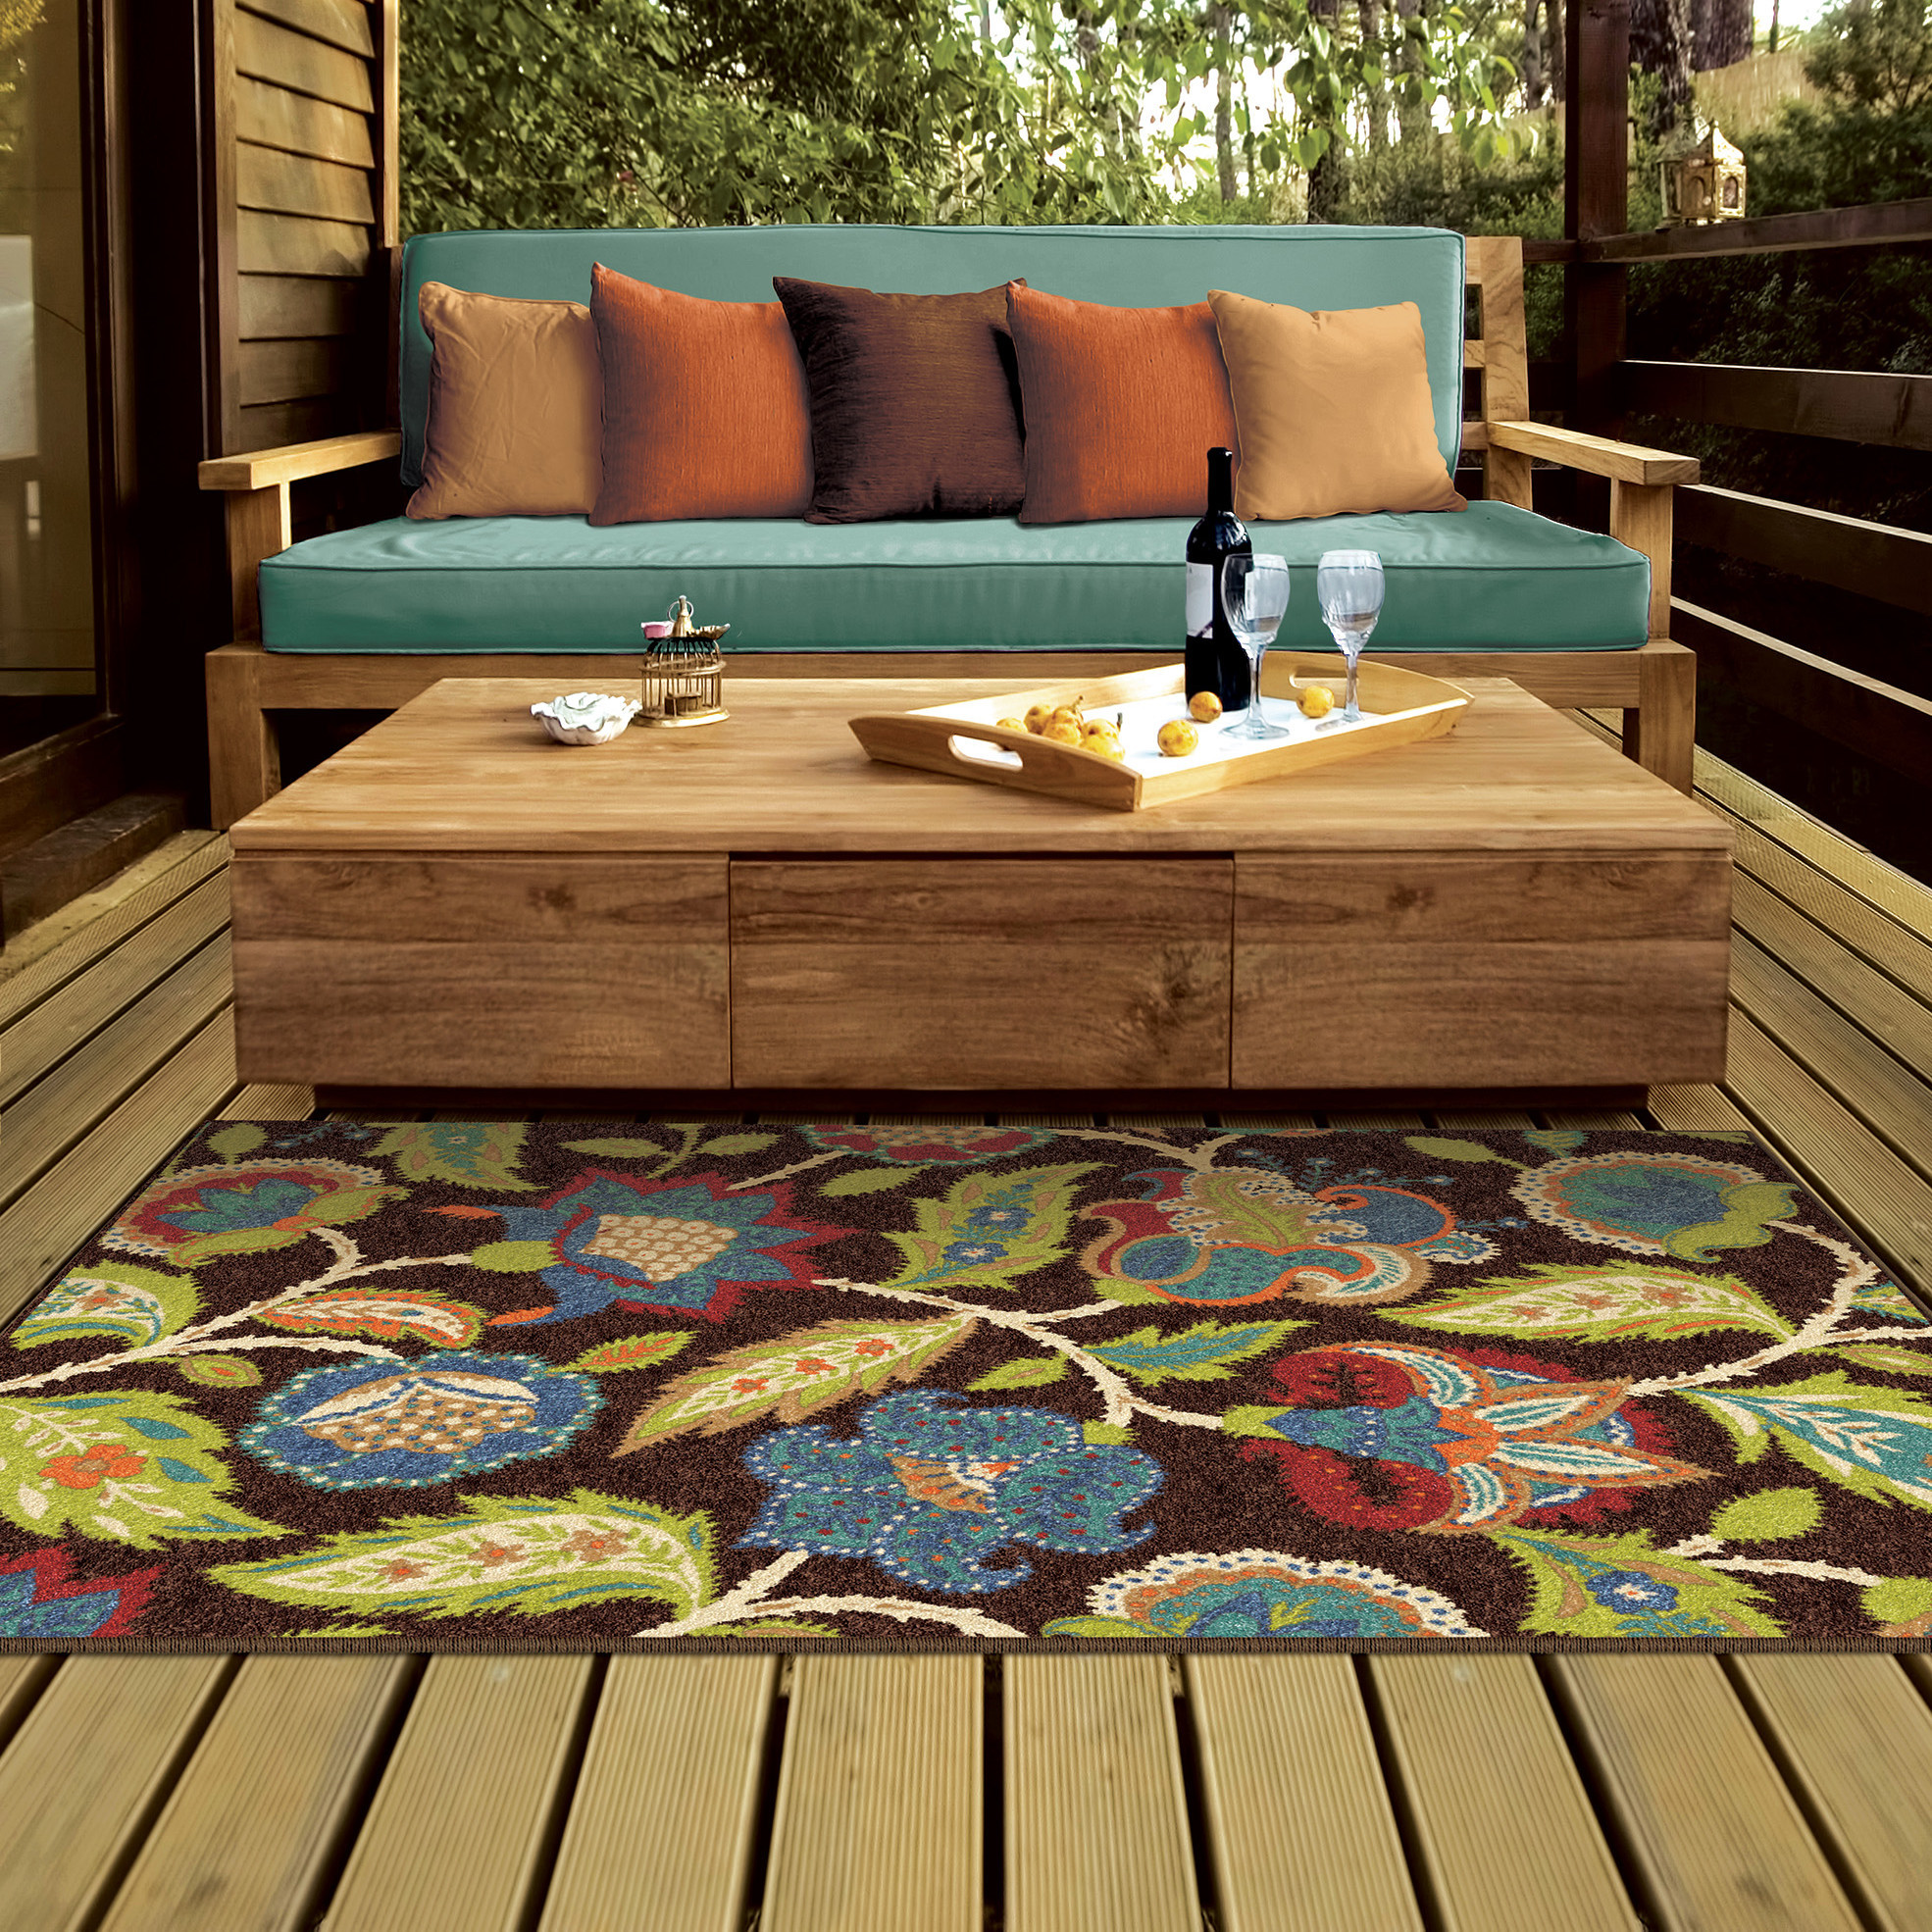 Best ideas about Outdoor Area Rugs . Save or Pin Threadbind Orwell Brown Indoor Outdoor Area Rug & Reviews Now.